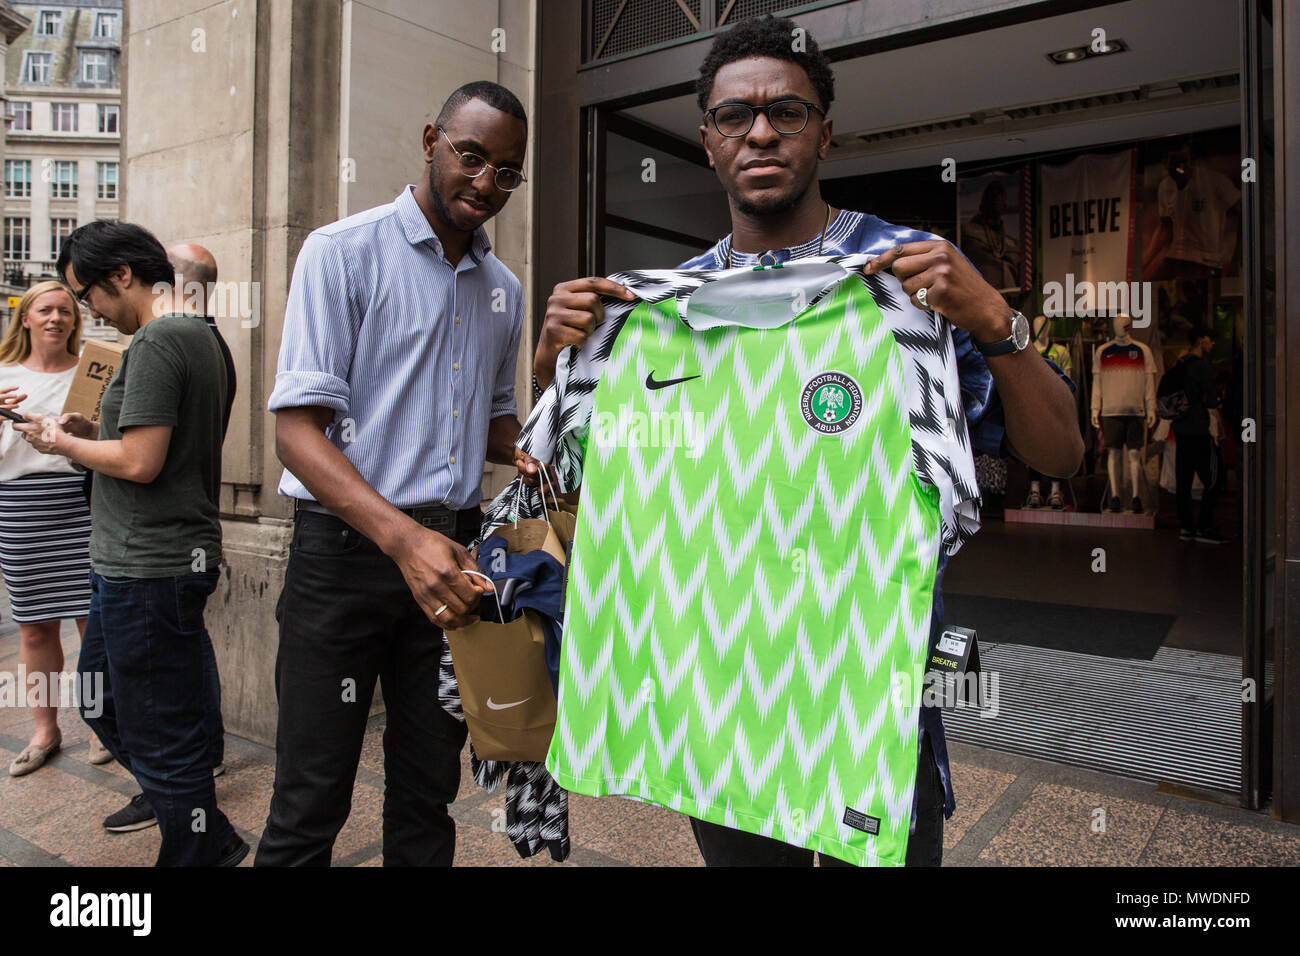 buy popular a3a60 28197 London, UK. 1st June, 2018. Fans of the Super Eagles, the ...